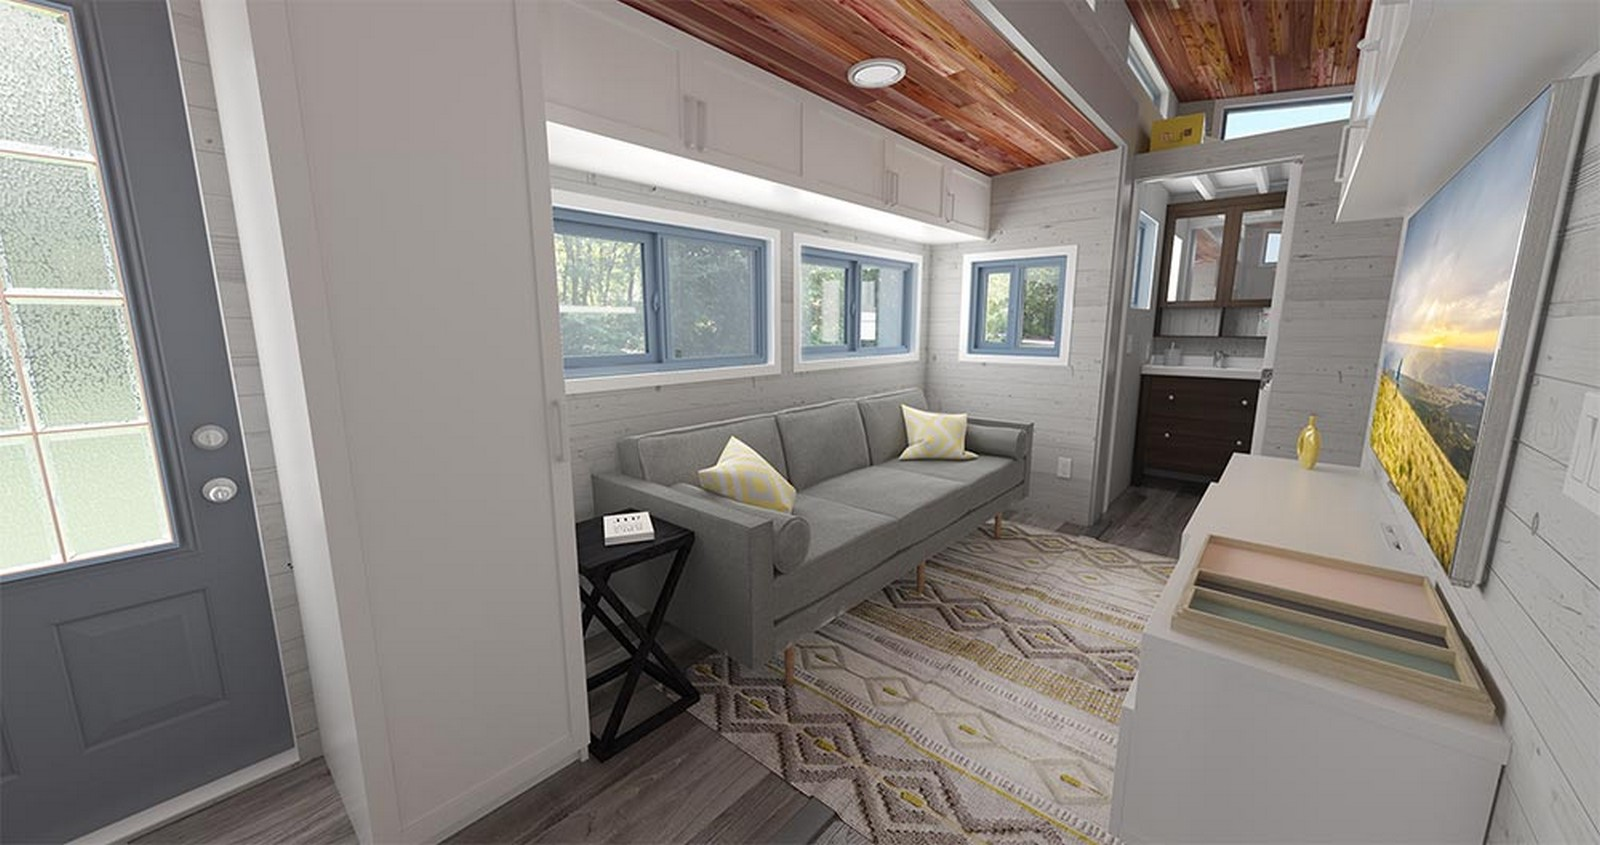 15 Examples of Tiny-home designs - Sheet2